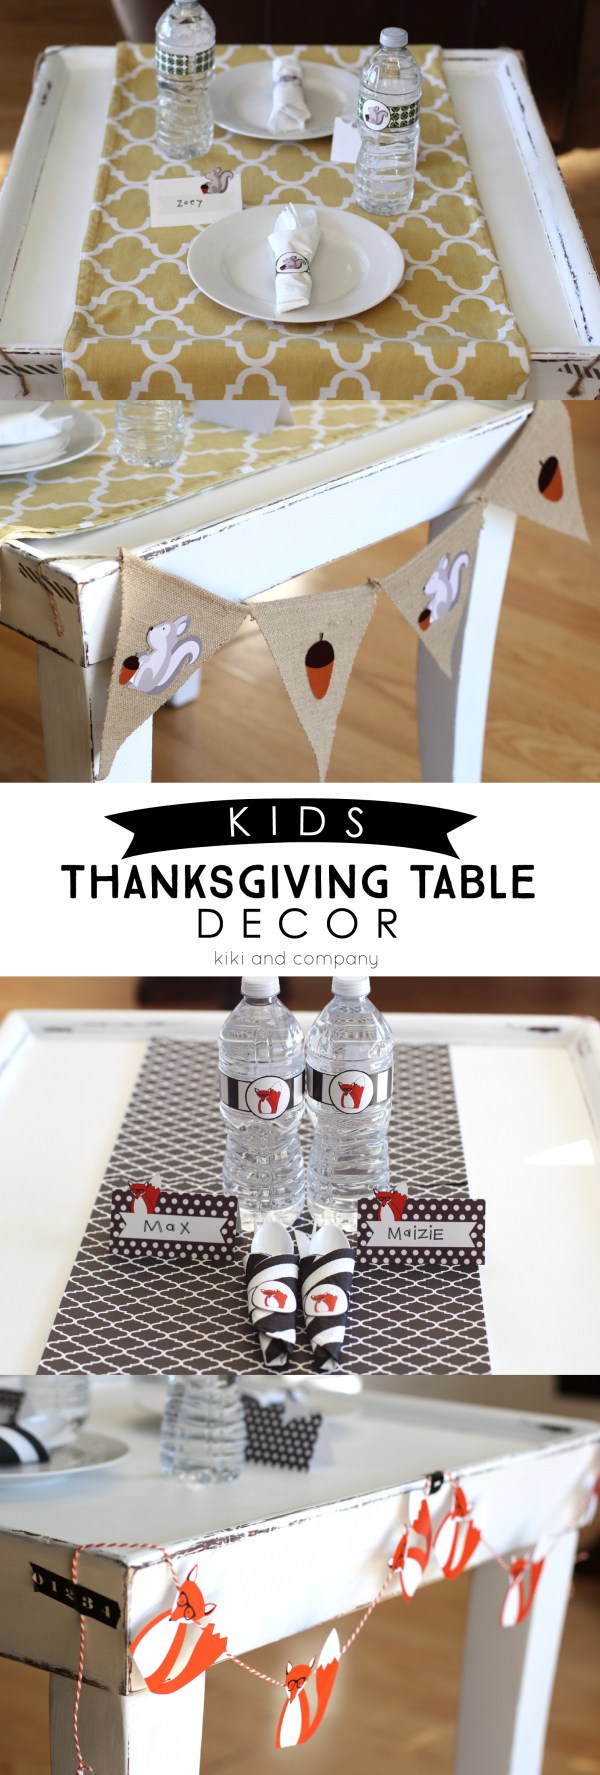 kids-thanksgiving-table-decor-from-kiki-and-company1-e1446975822875